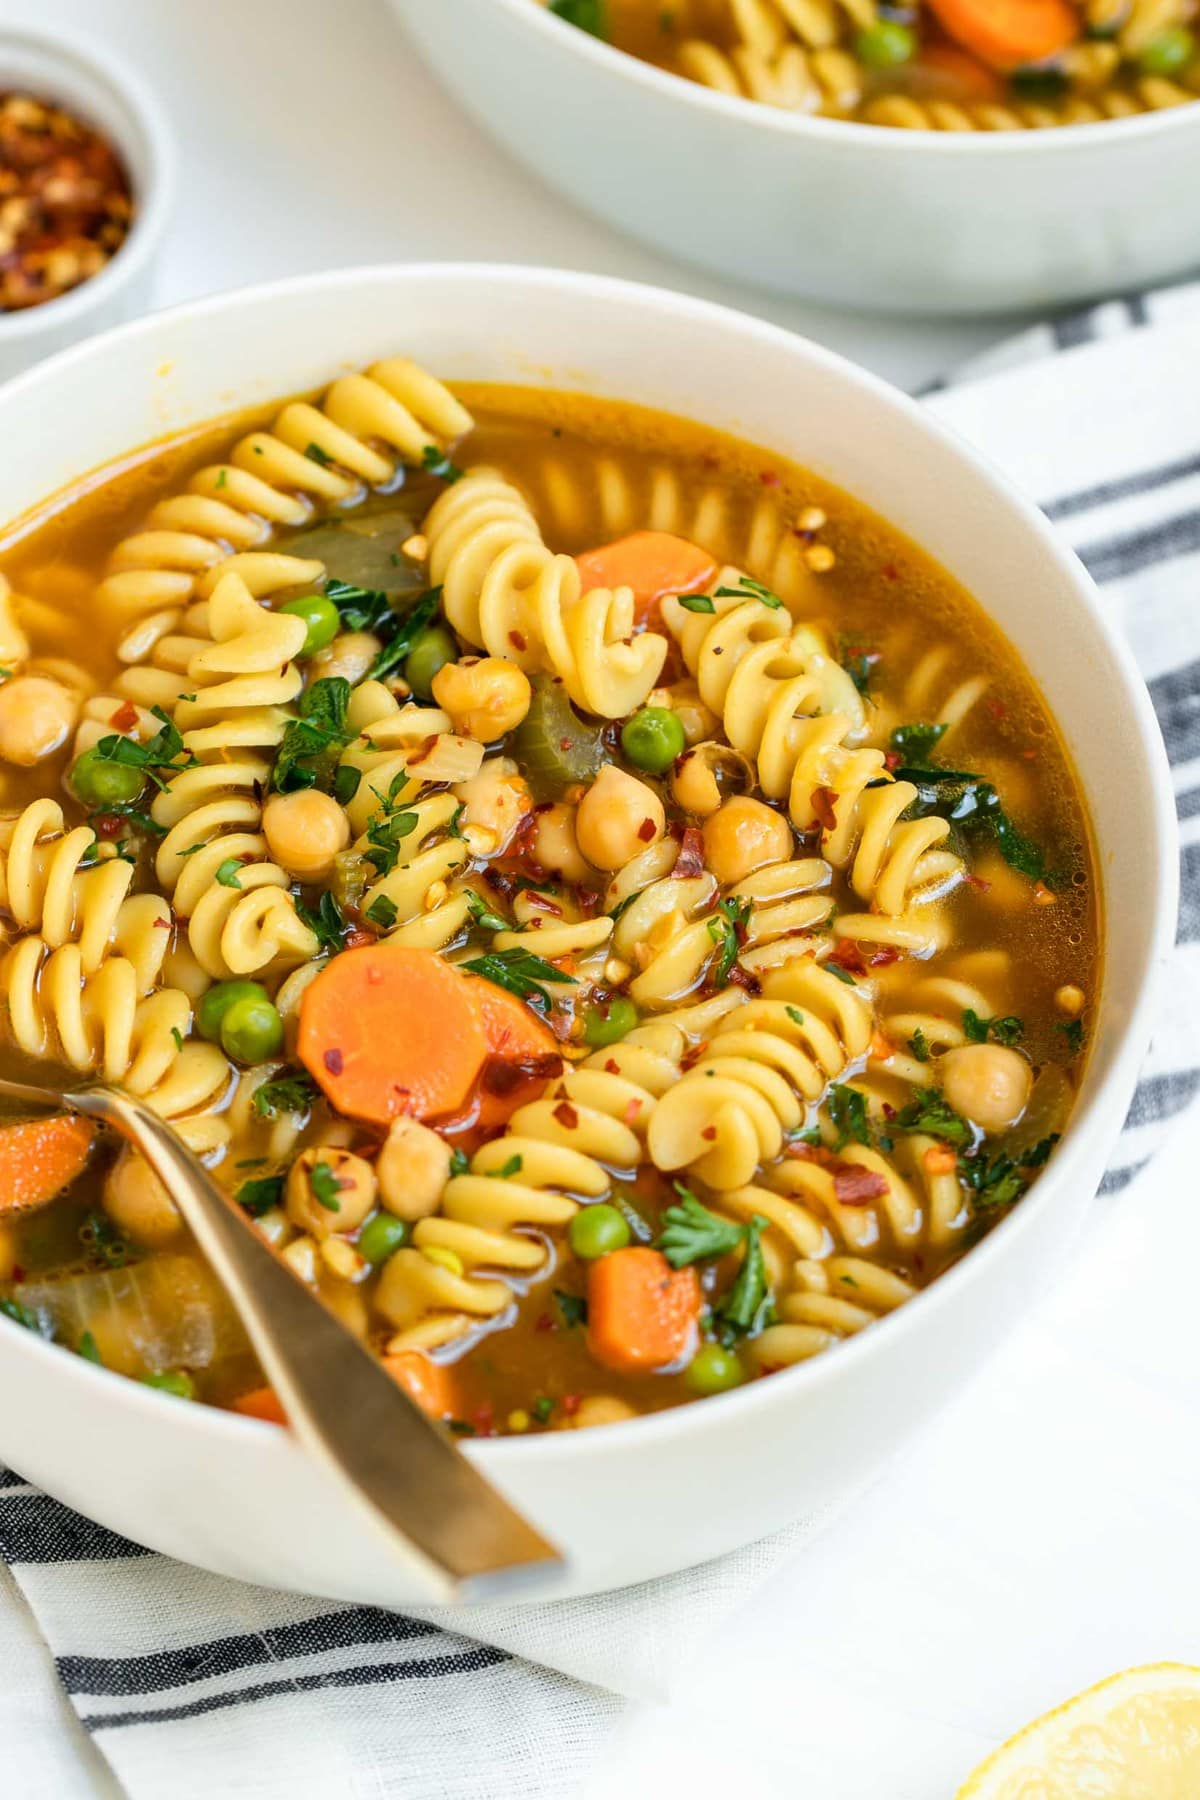 Chickpea noodle soup in a small white bowl.